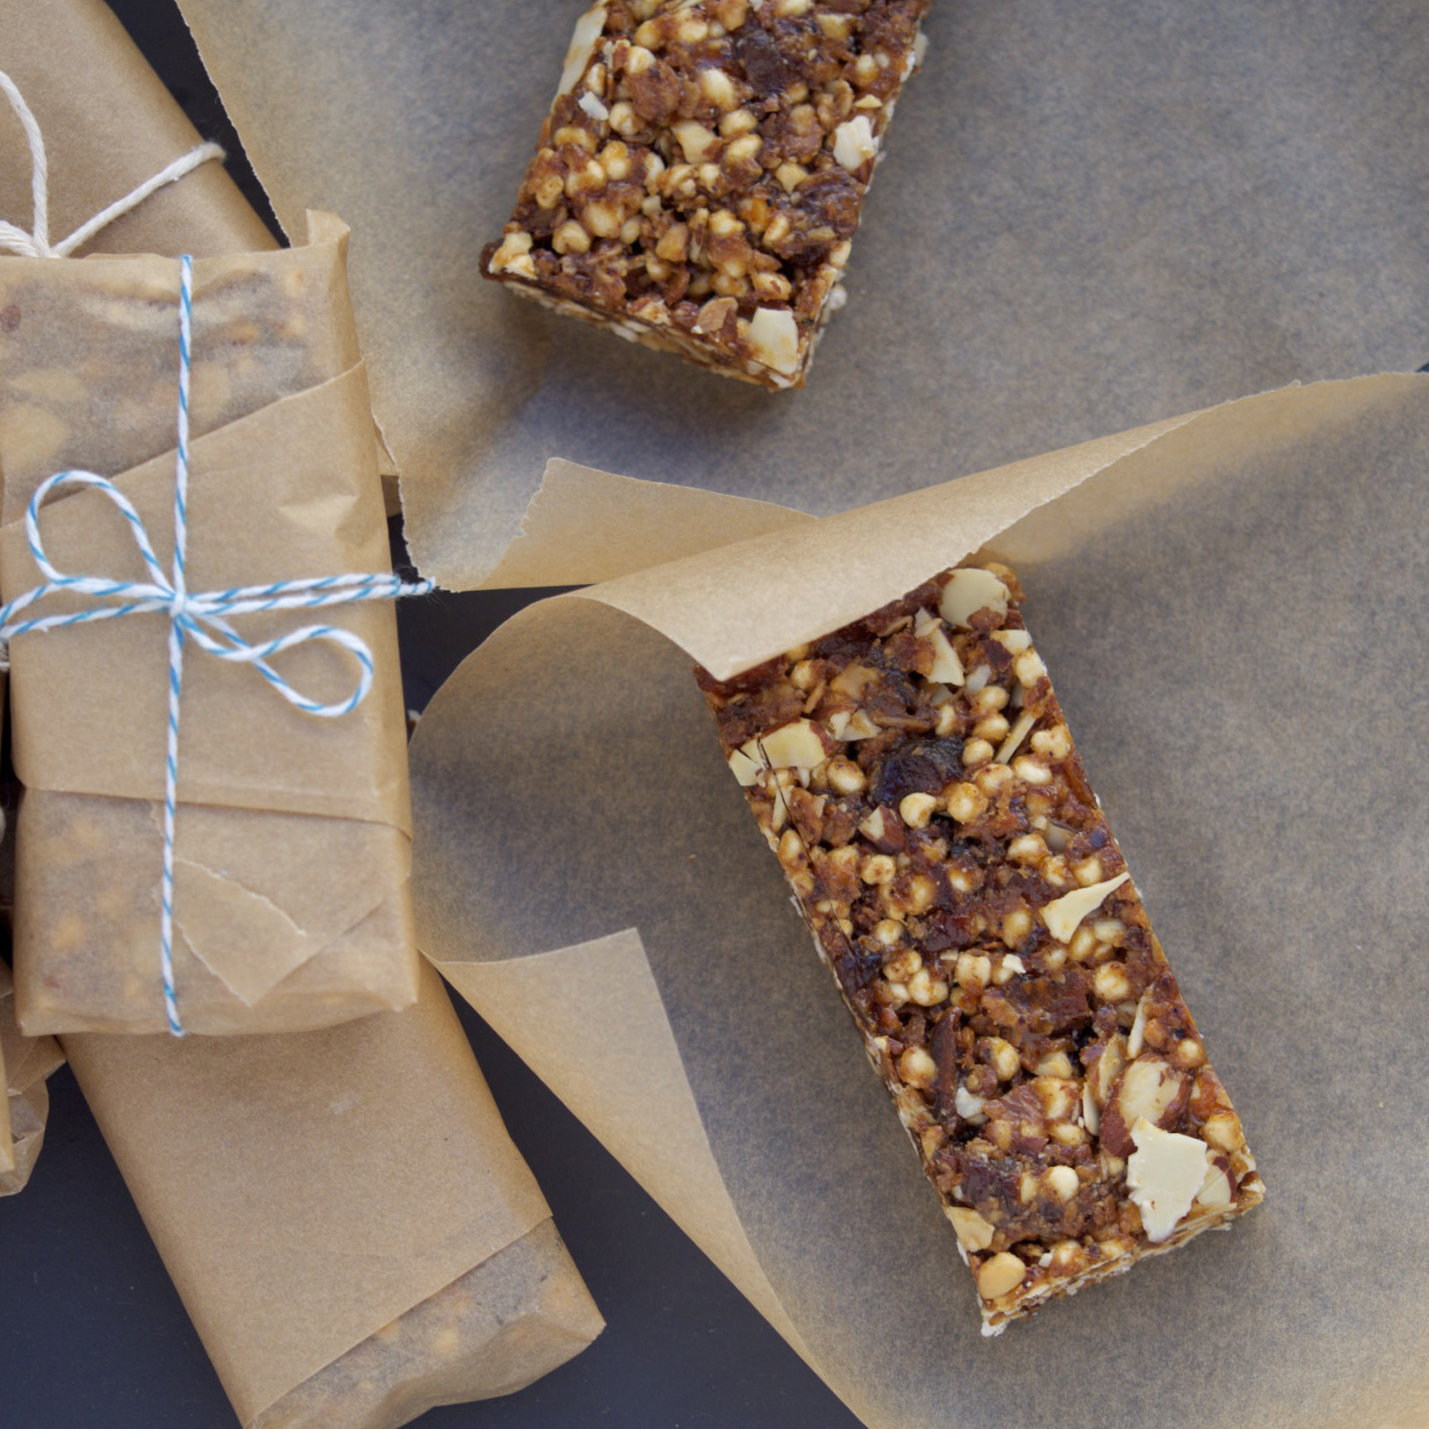 Almond Apricot Bars With Puffed Cereal